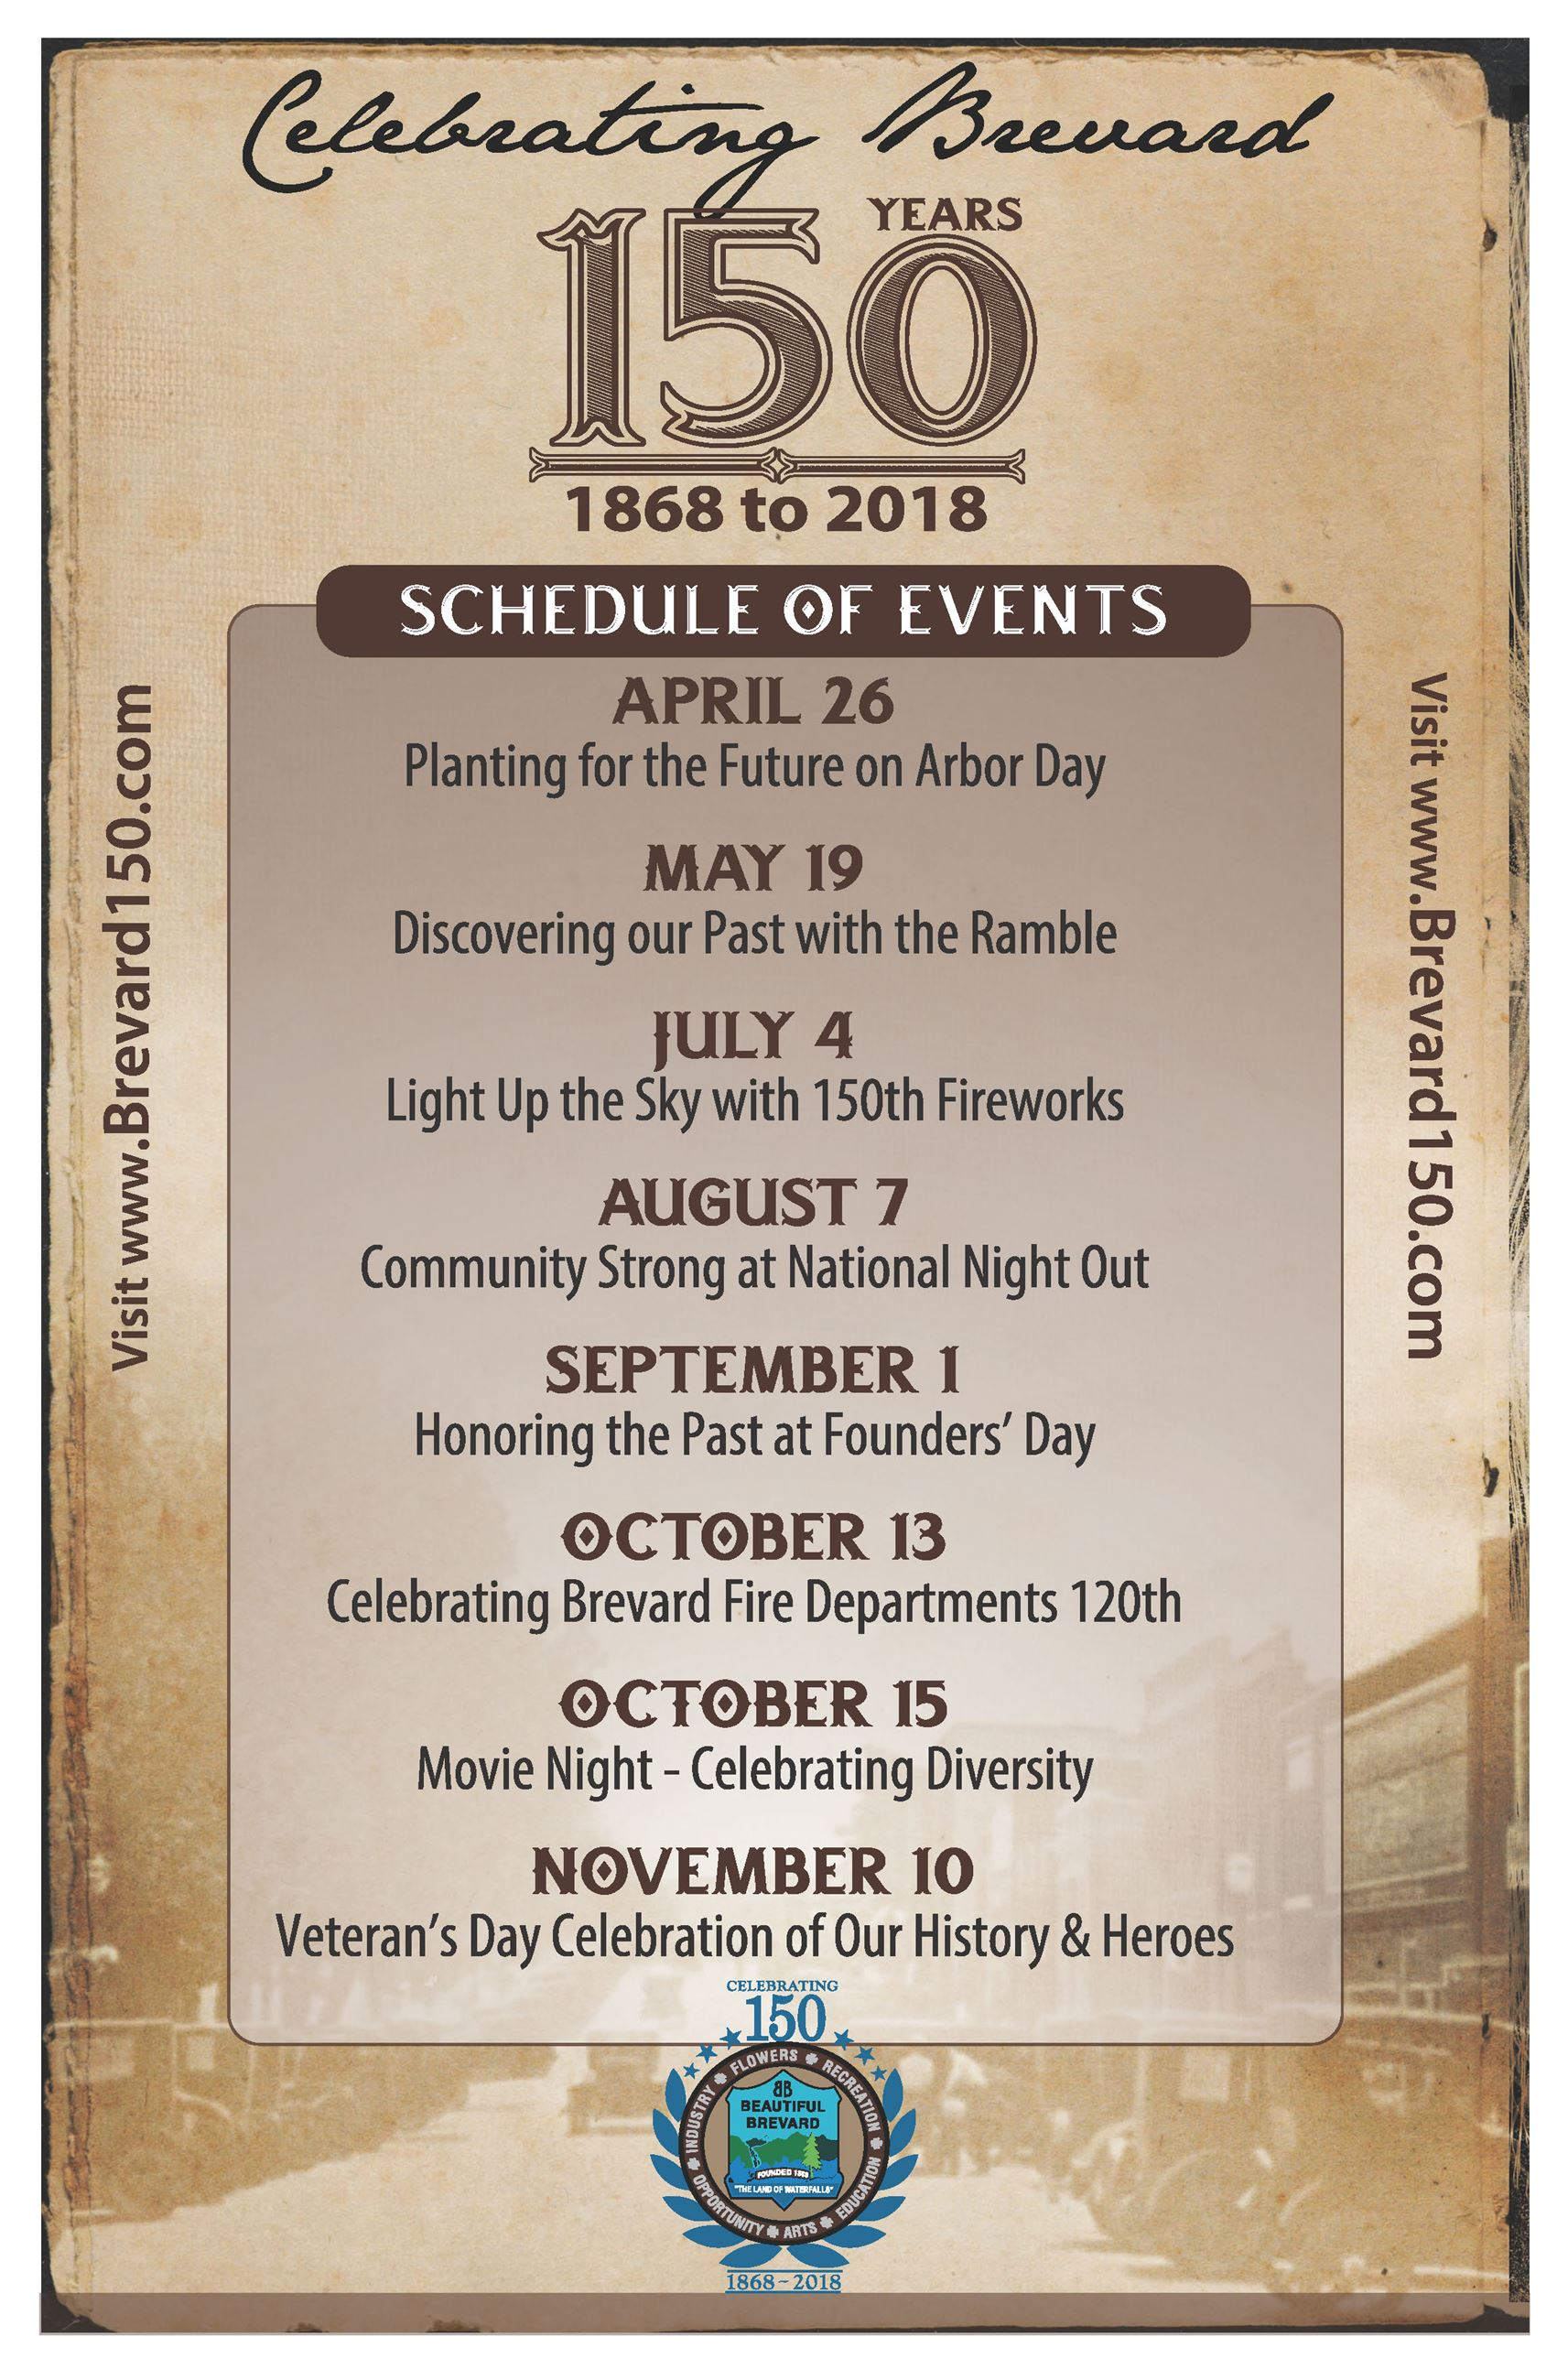 150th event schedule